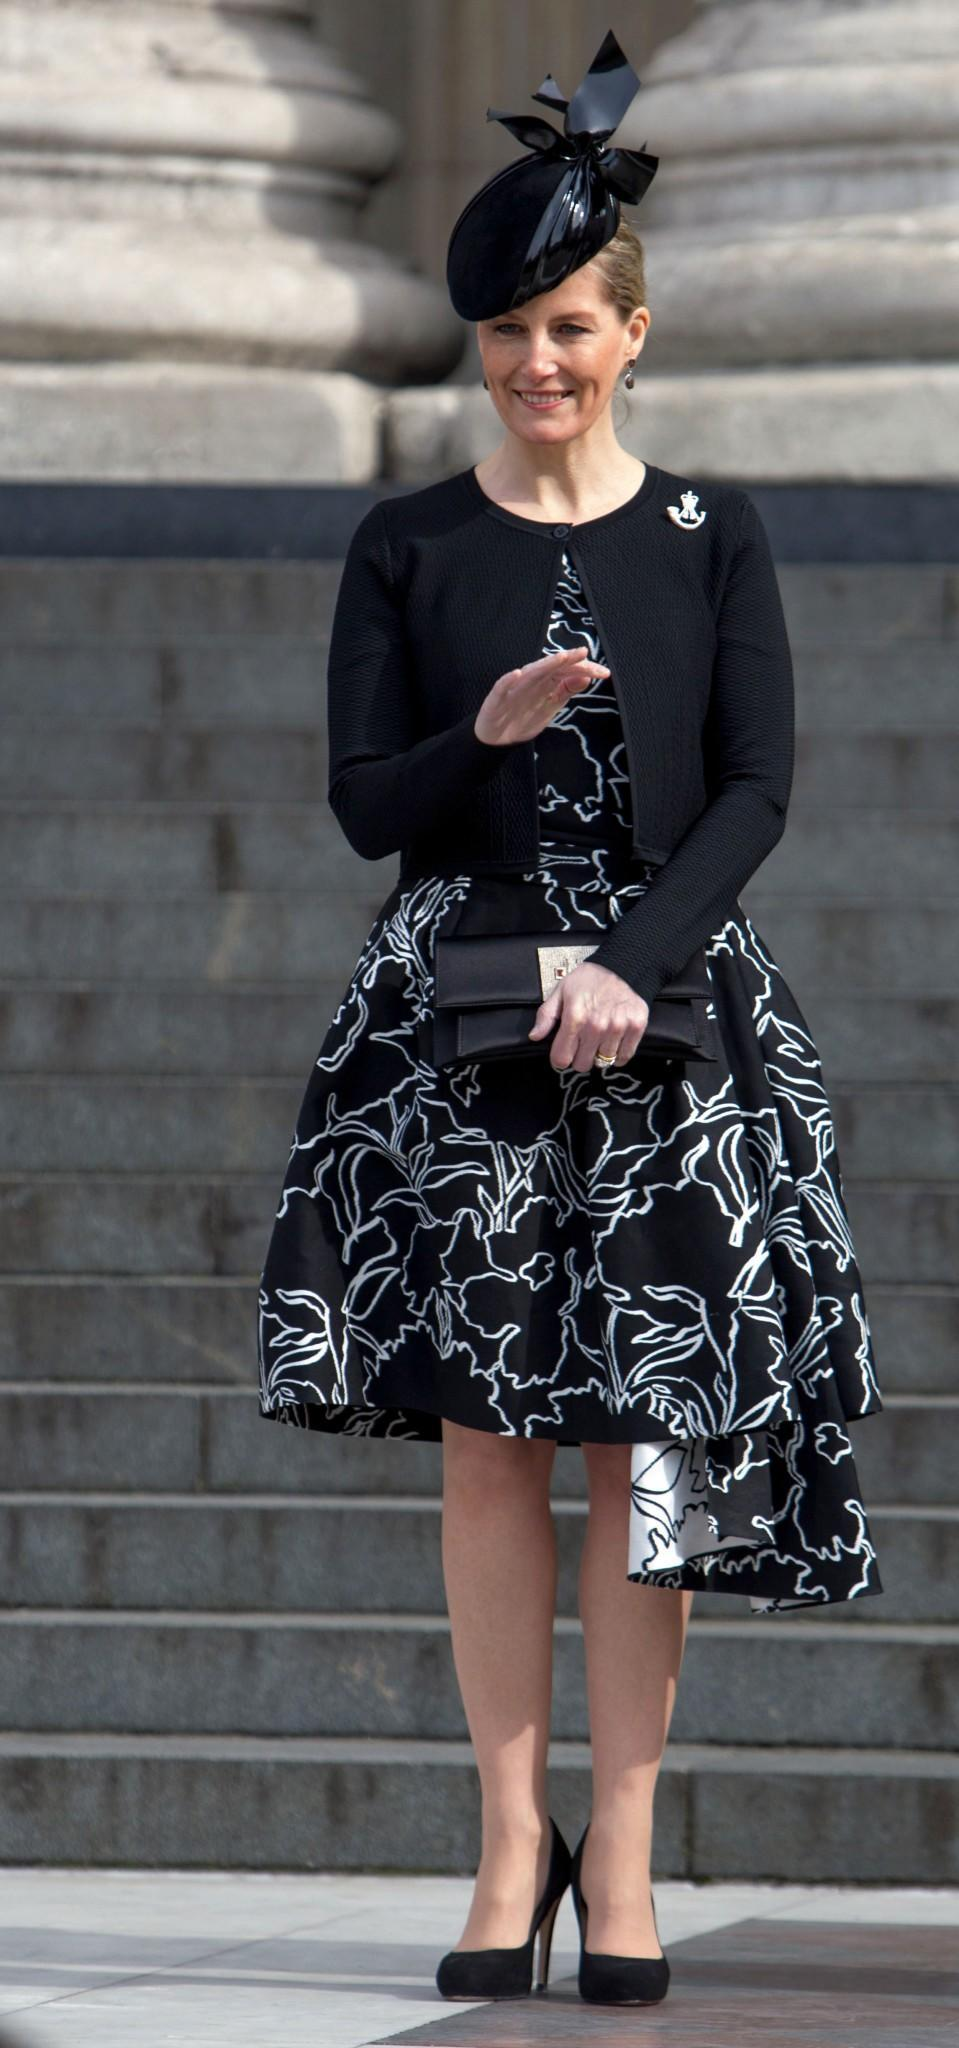 <p>Working this two-tone ensemble on so many levels at St Paul's in March 2015b [Photo: PA] </p>